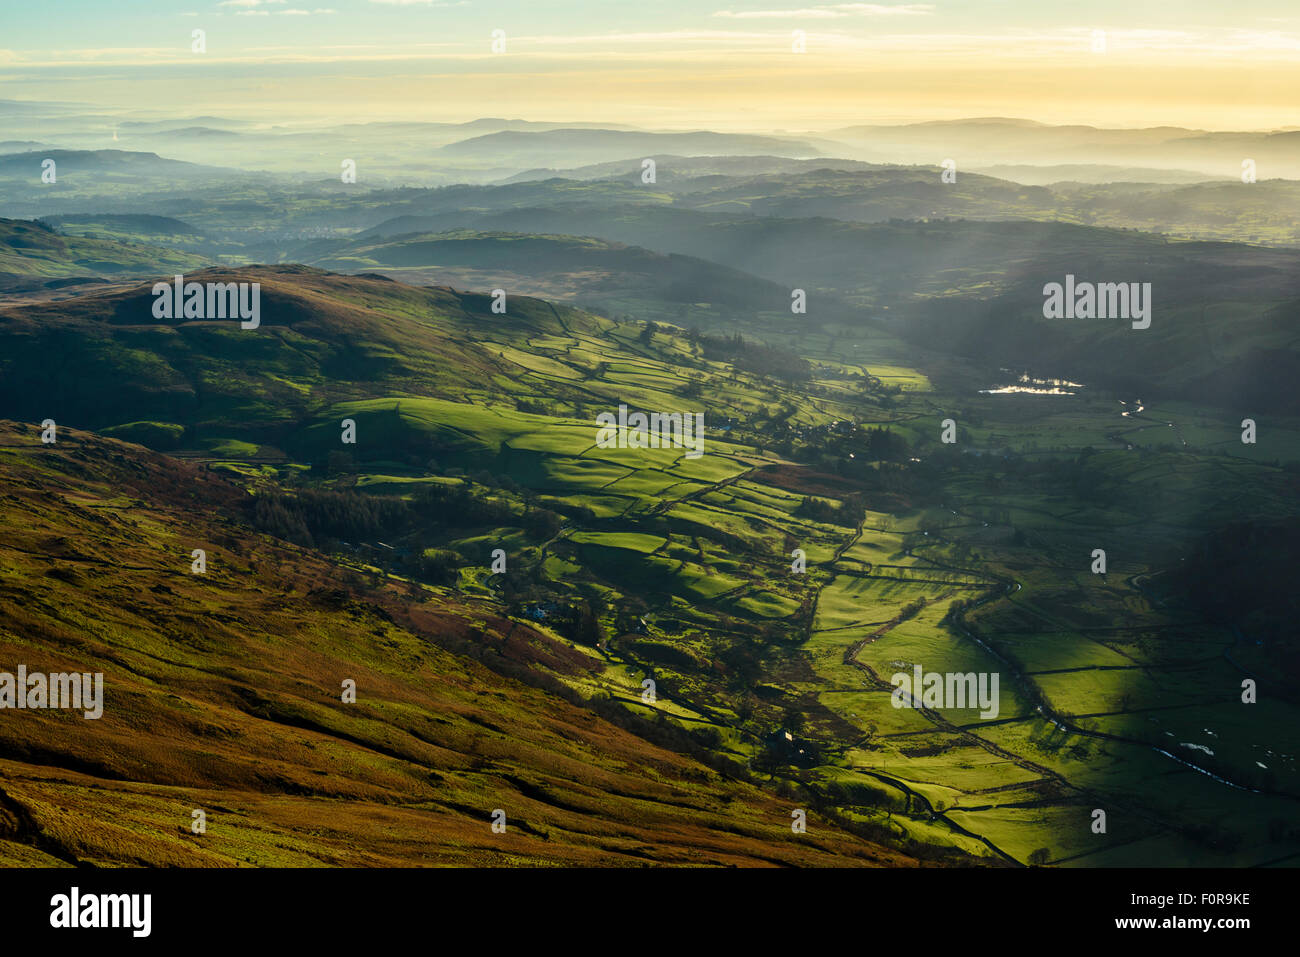 Temperature inversion over Kentmere valley Lake District from slopes of Kentmere Pike - Stock Image